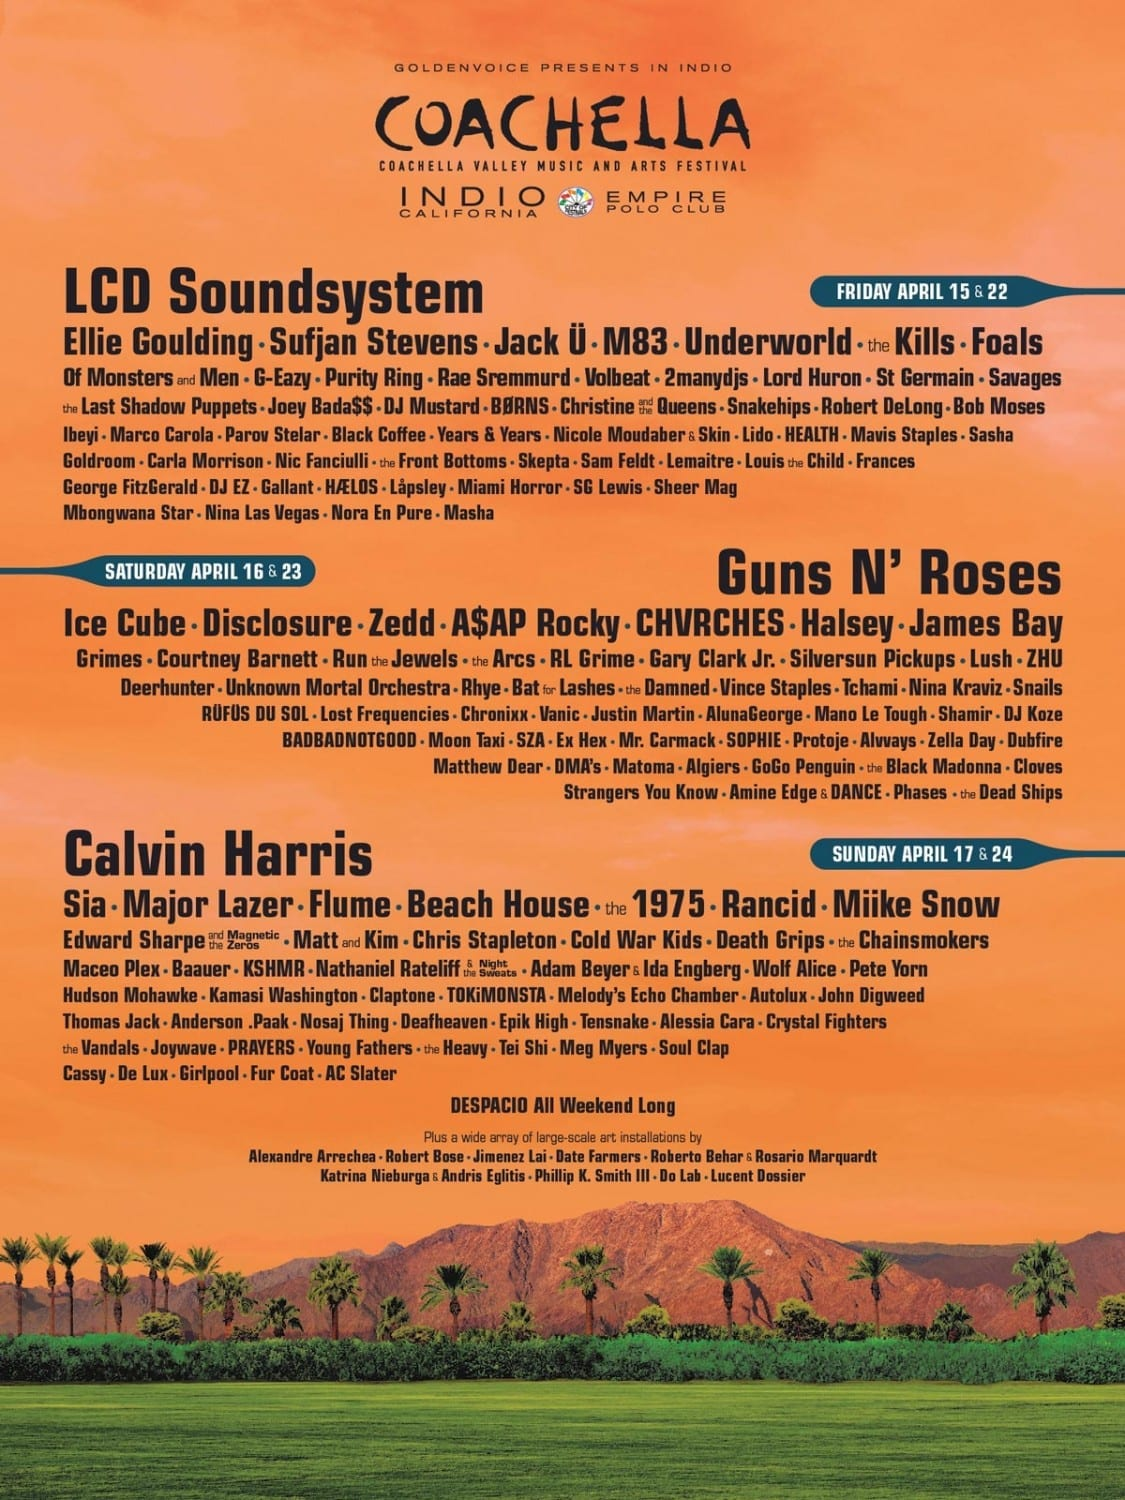 Coachella-2016-Full-Lineup